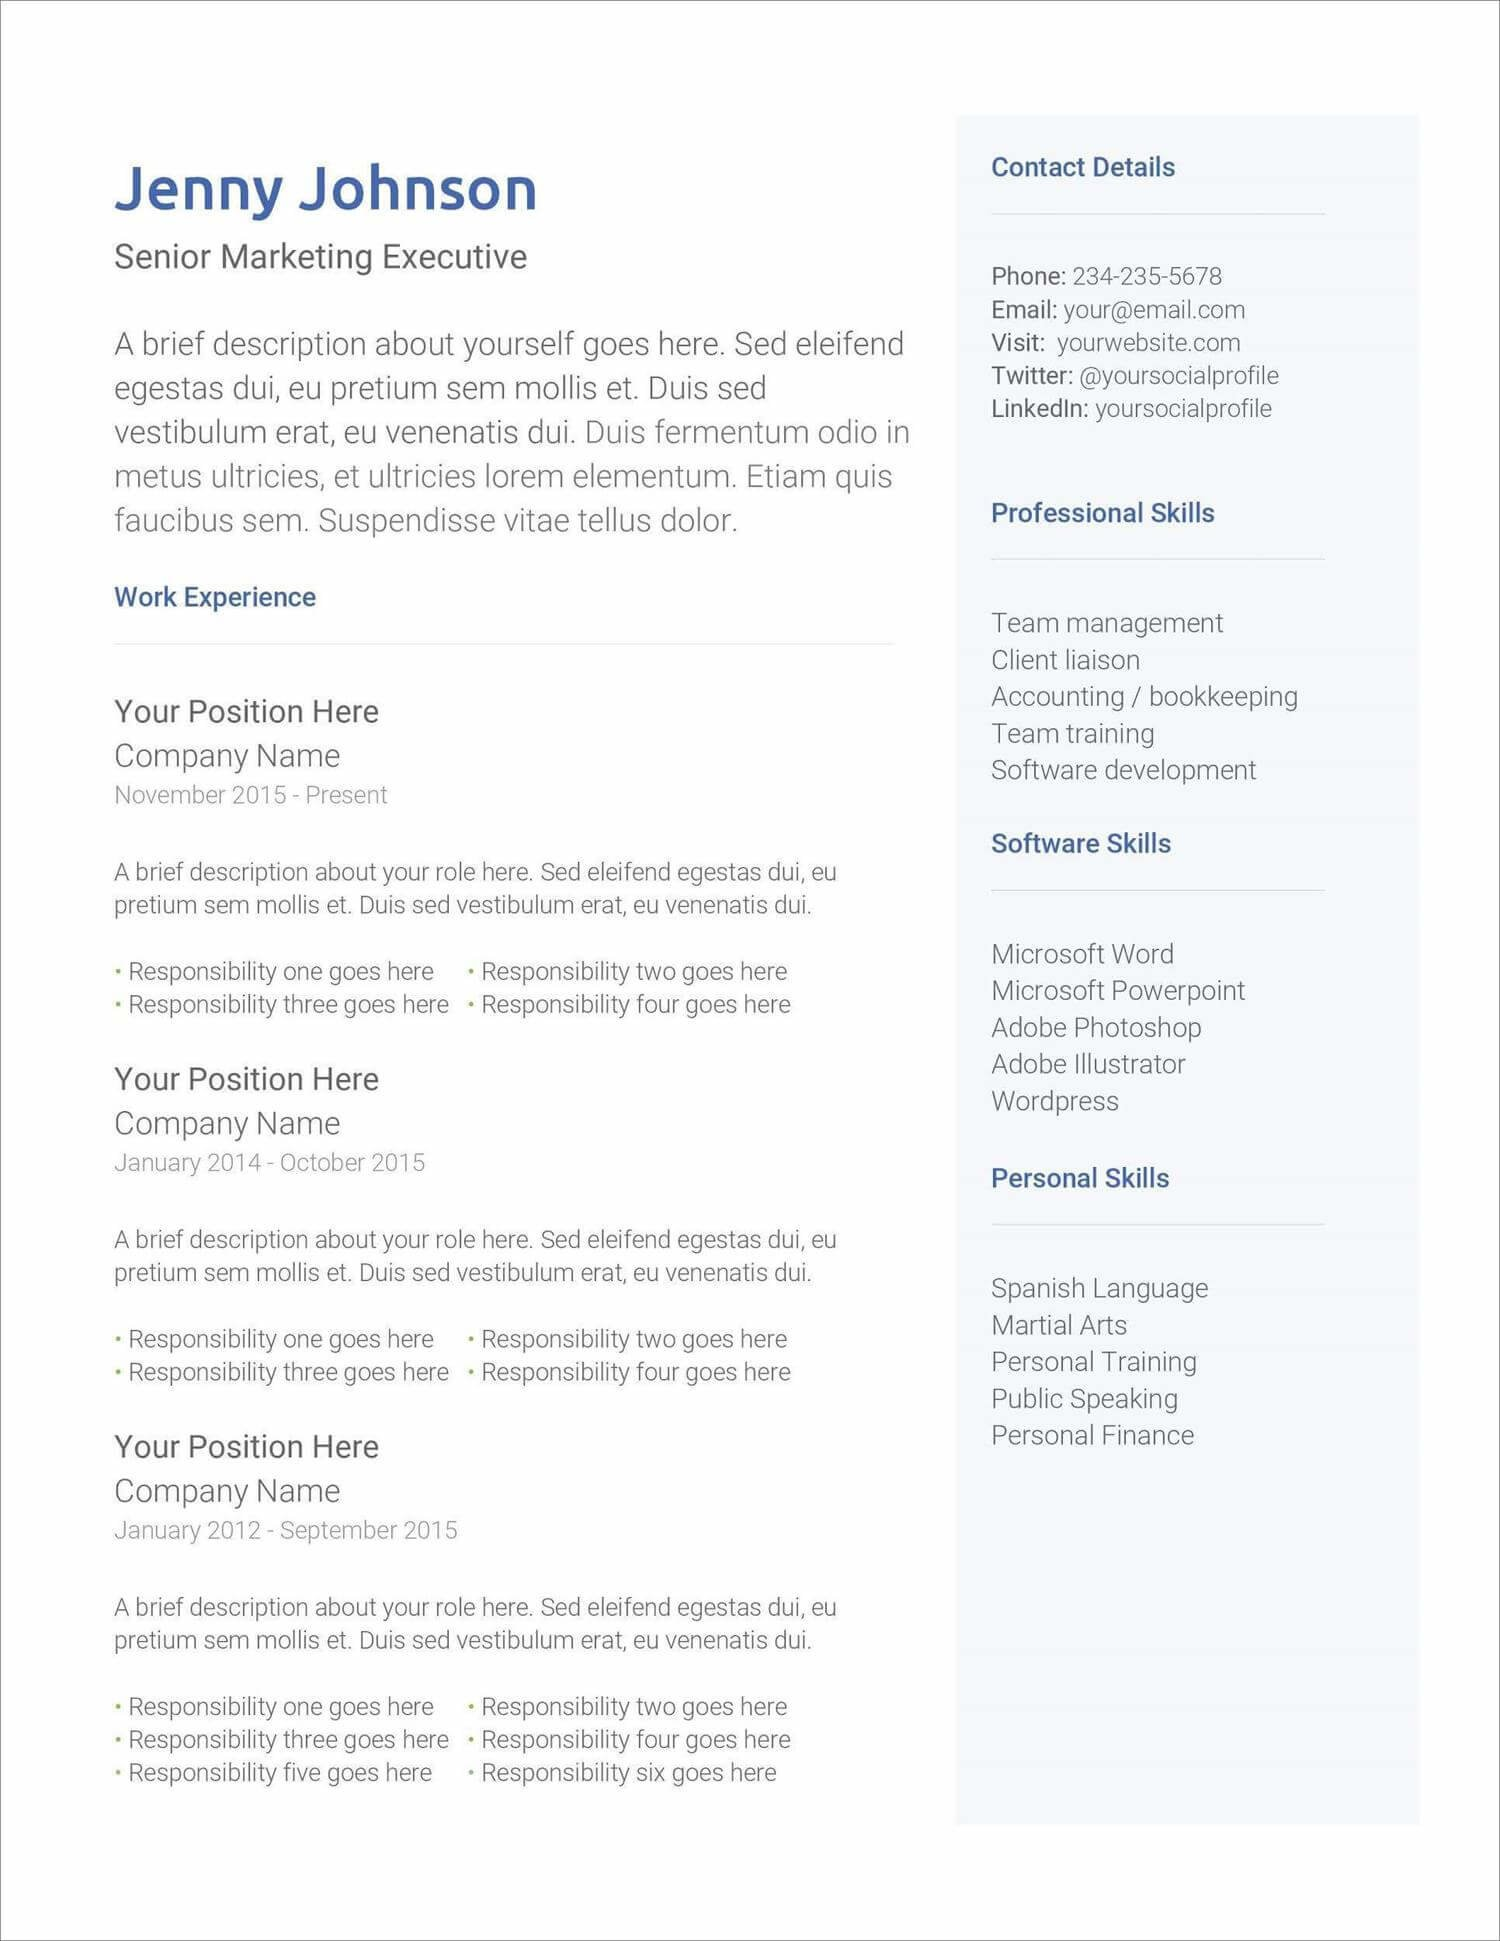 Creating the perfect resume couldn't get easier with our free resume builder! 17 Free Resume Templates For 2021 To Download Now